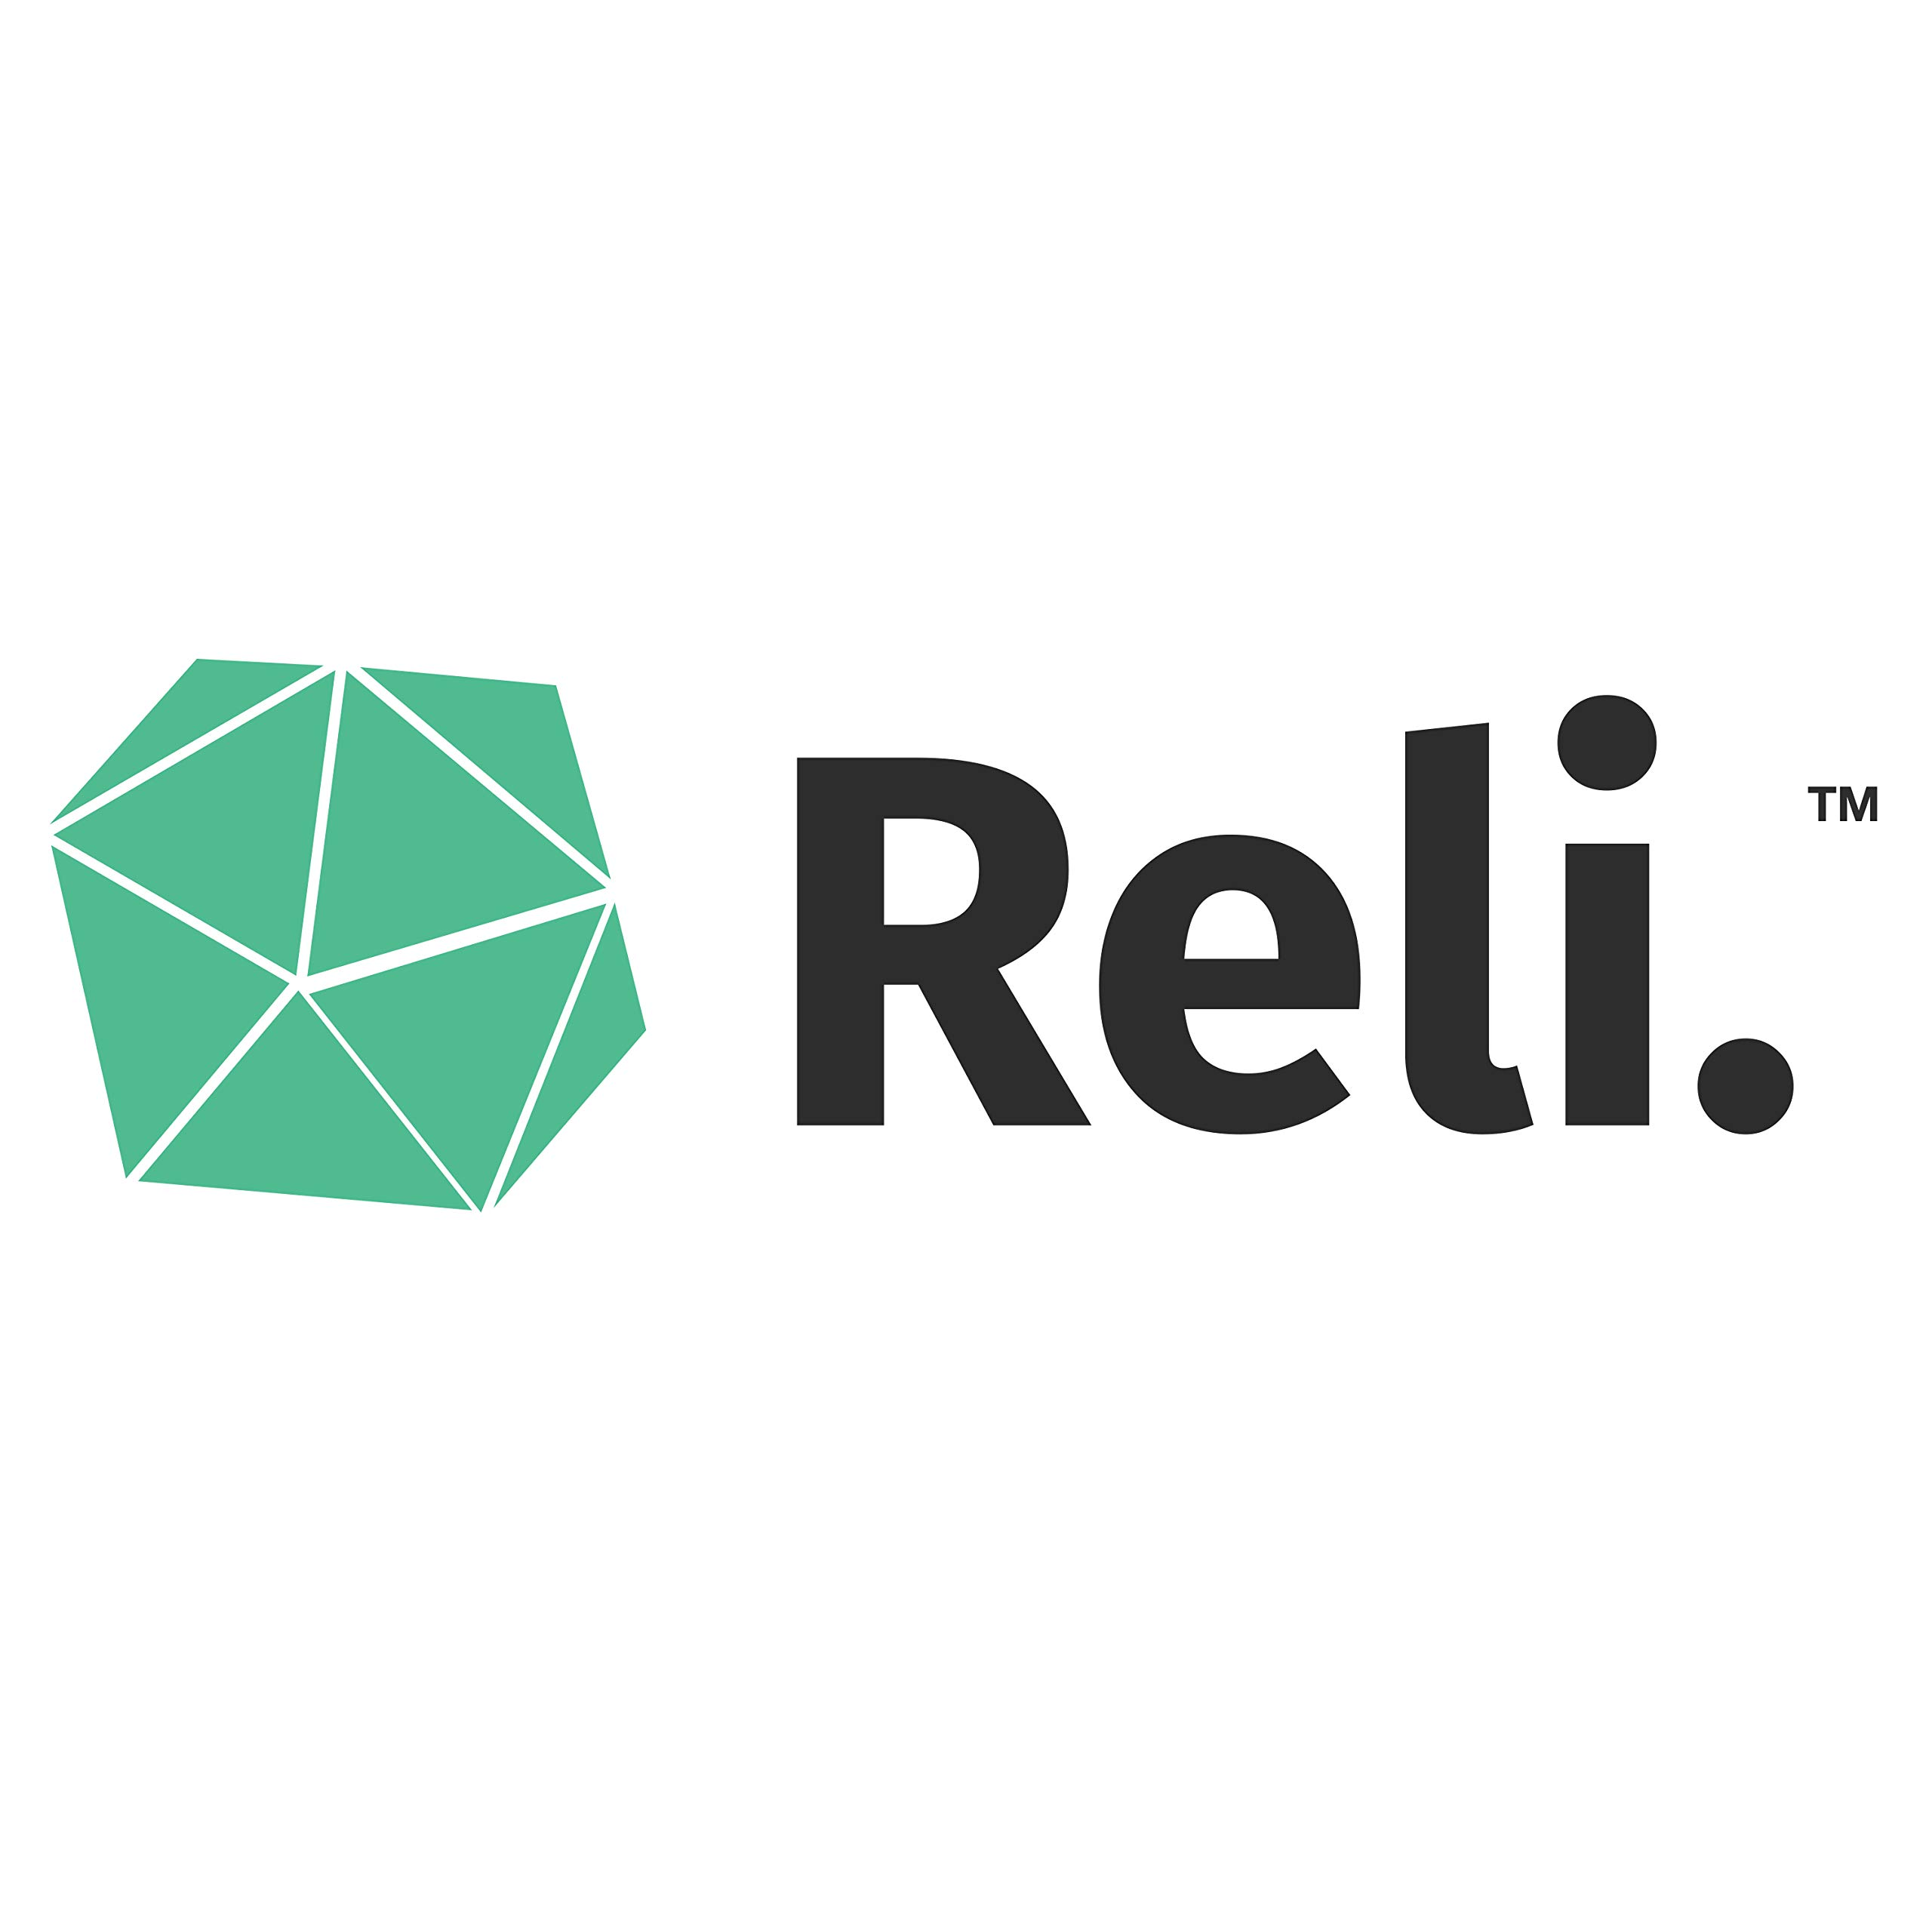 Reli. Recyclable Eco-Friendly Trash Bags, 33 Gallon (150 Count) - Made from Recycled Content (SCS Certified) - Go Green Canliners - Environment-Friendly Garbage Bags (30 Gallon - 35 Gallon) (Black) by Reli. (Image #7)